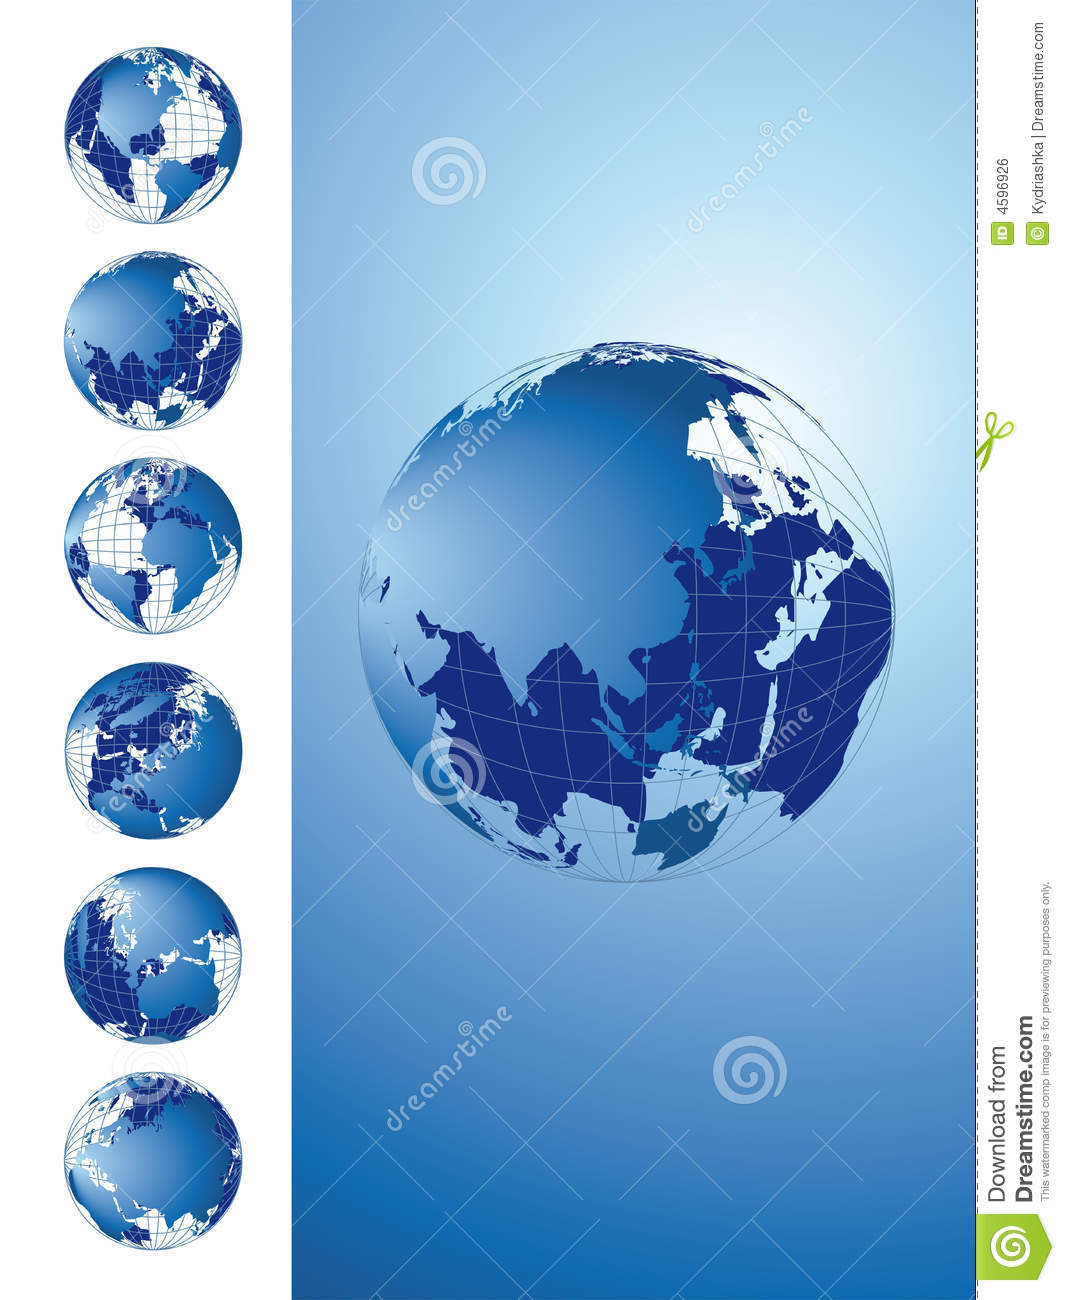 World map 3d globe series stock illustration illustration of world map 3d globe series gumiabroncs Image collections